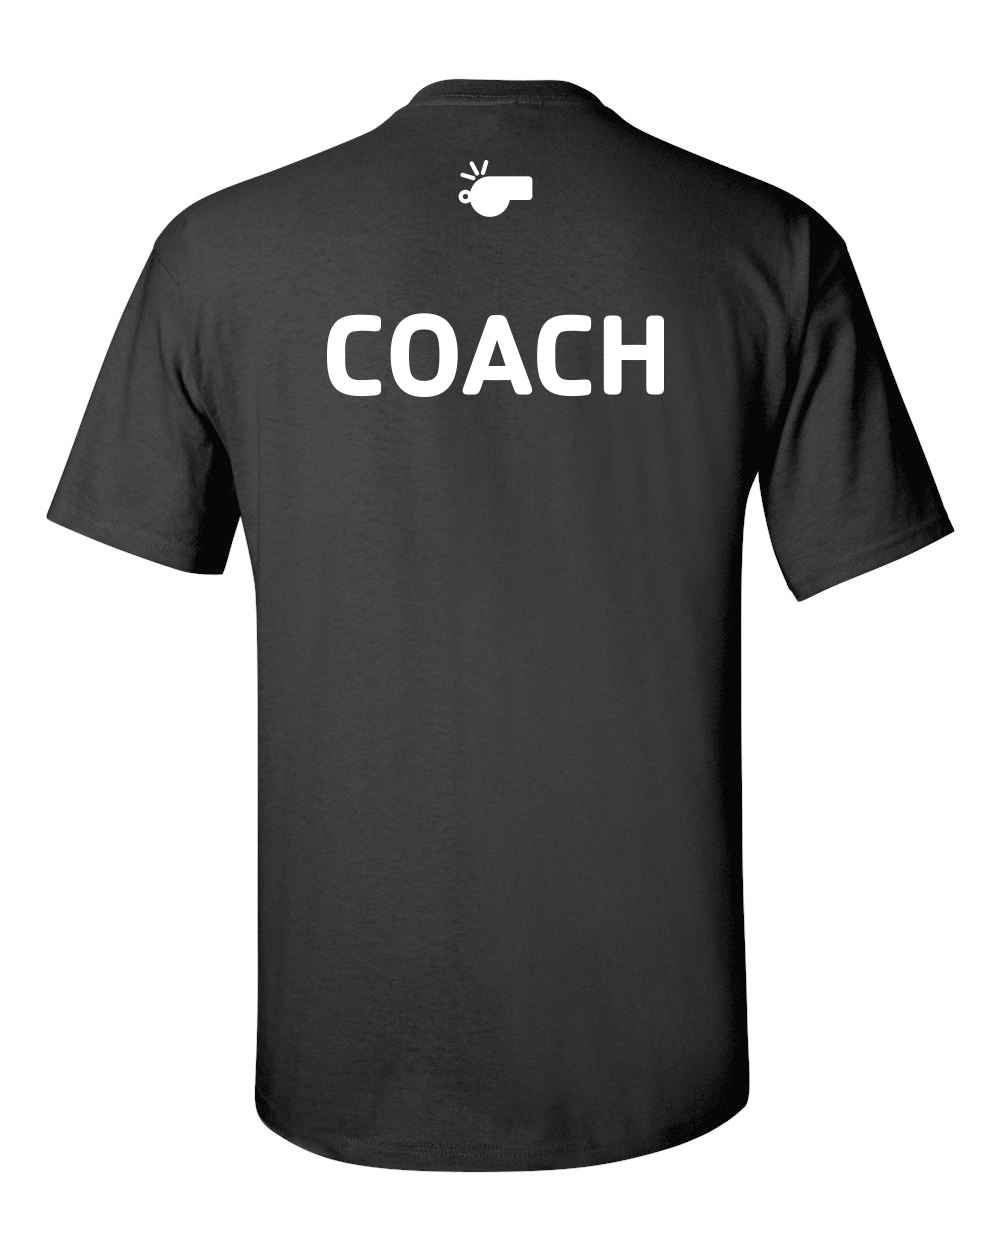 Coach subcategory image